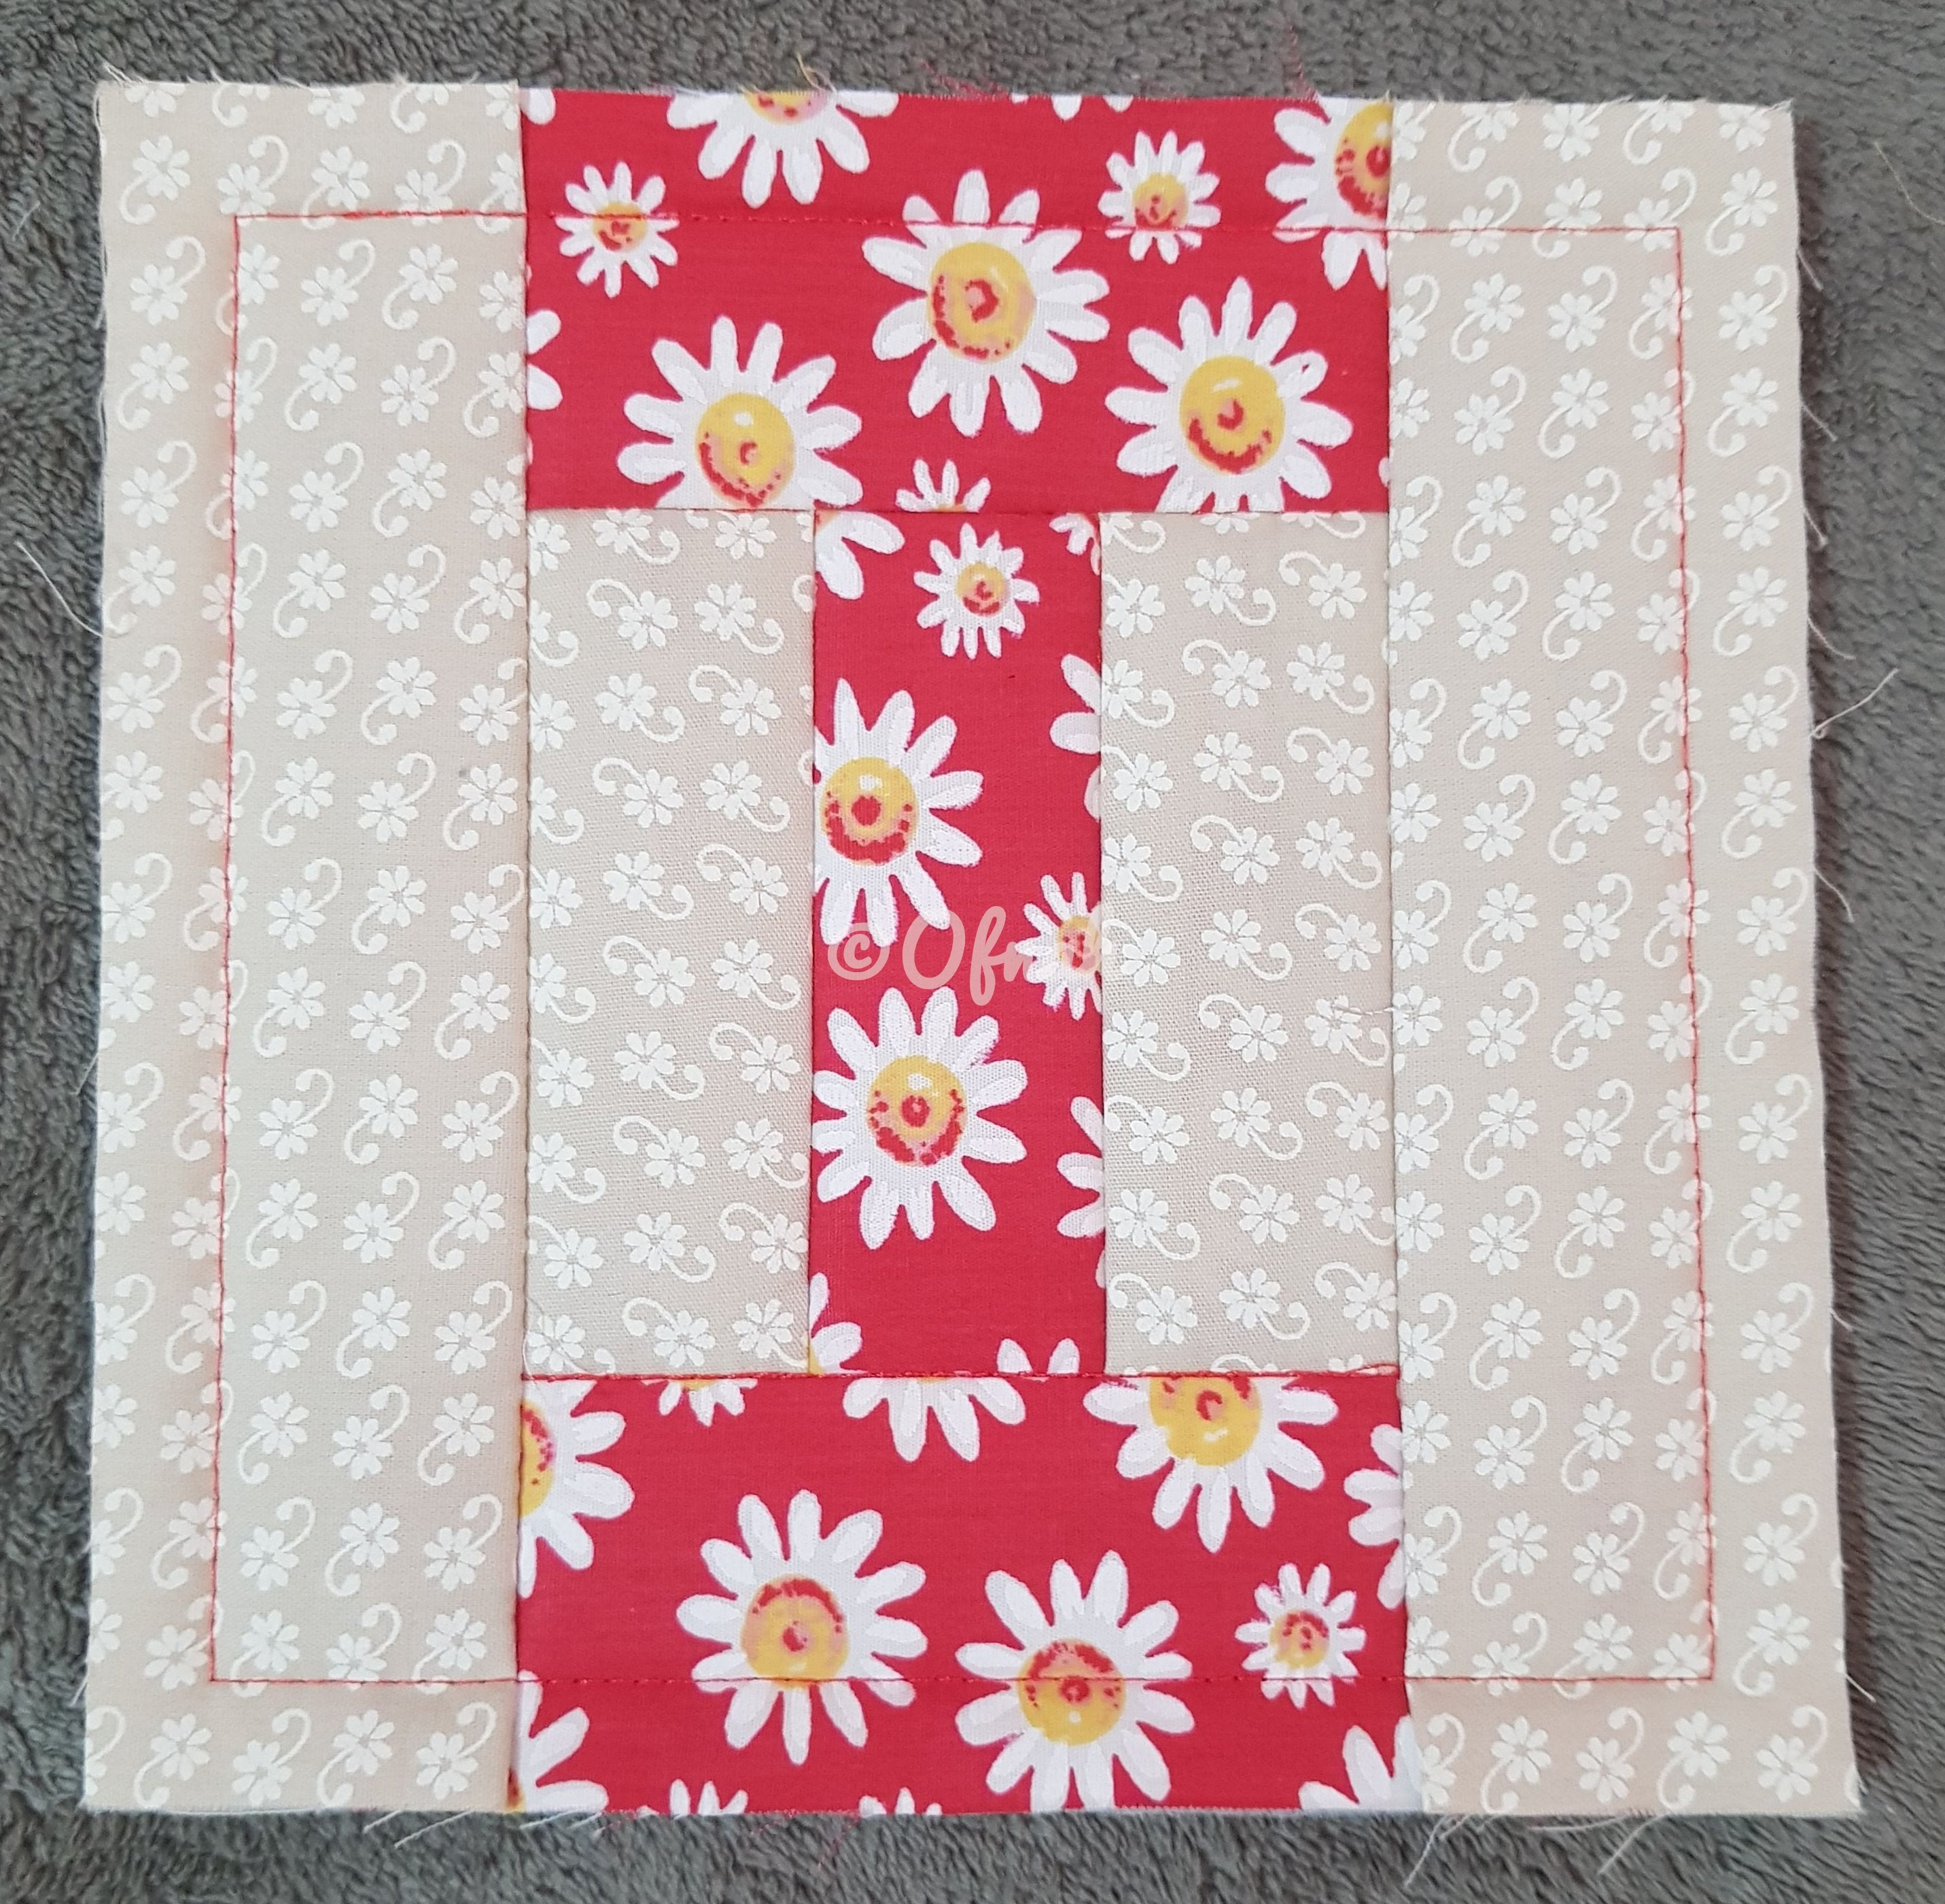 ITH LETTER I QUILT BLOCK